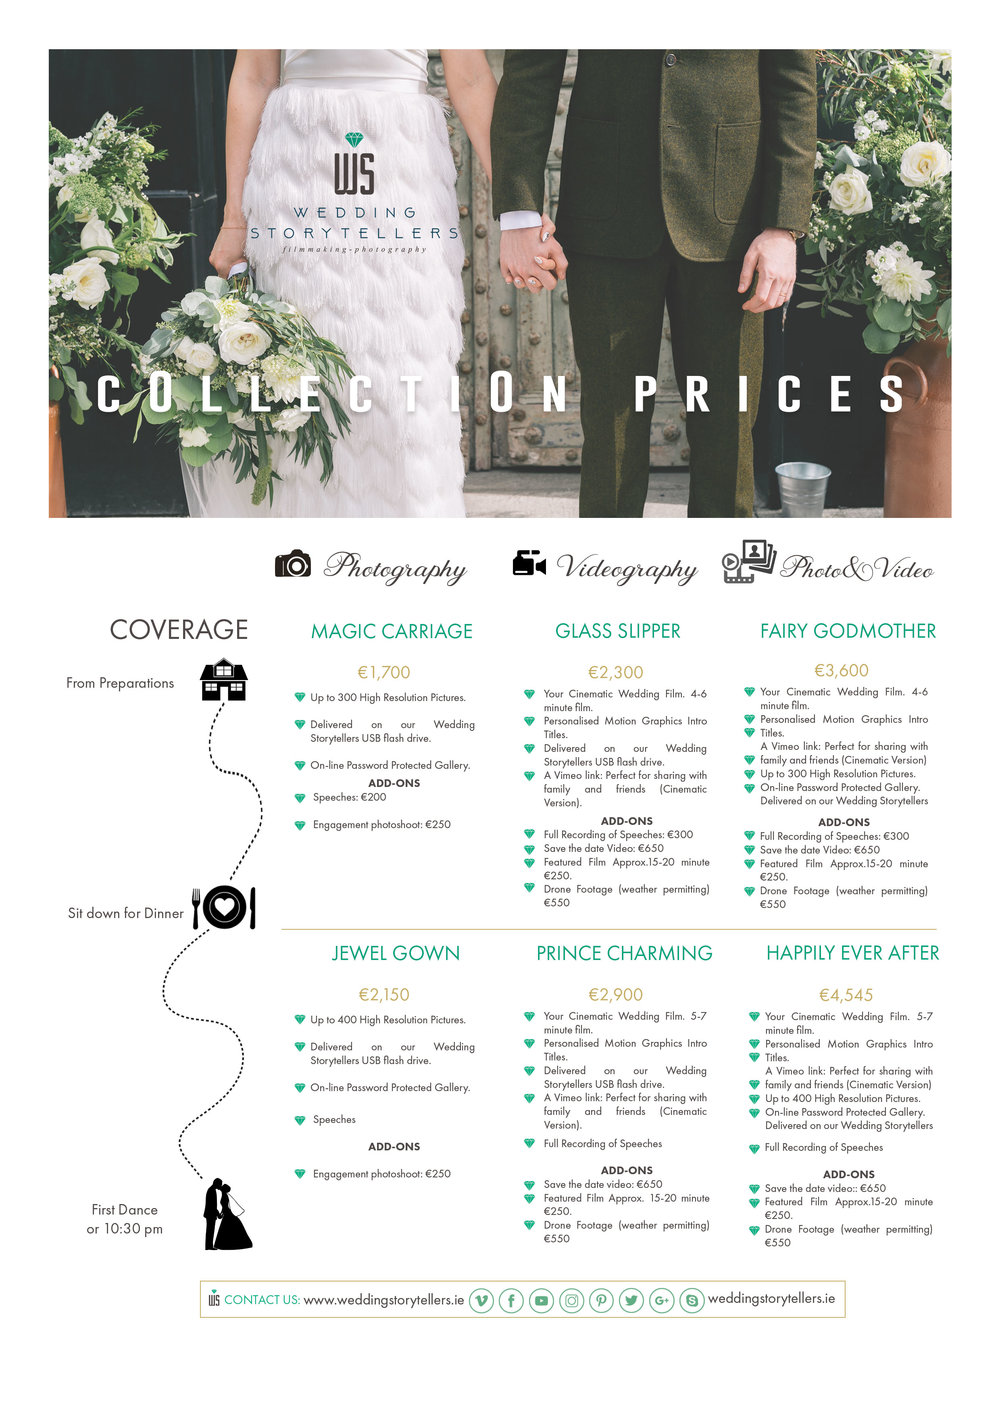 WST-collection-prices-2018---2019.jpg